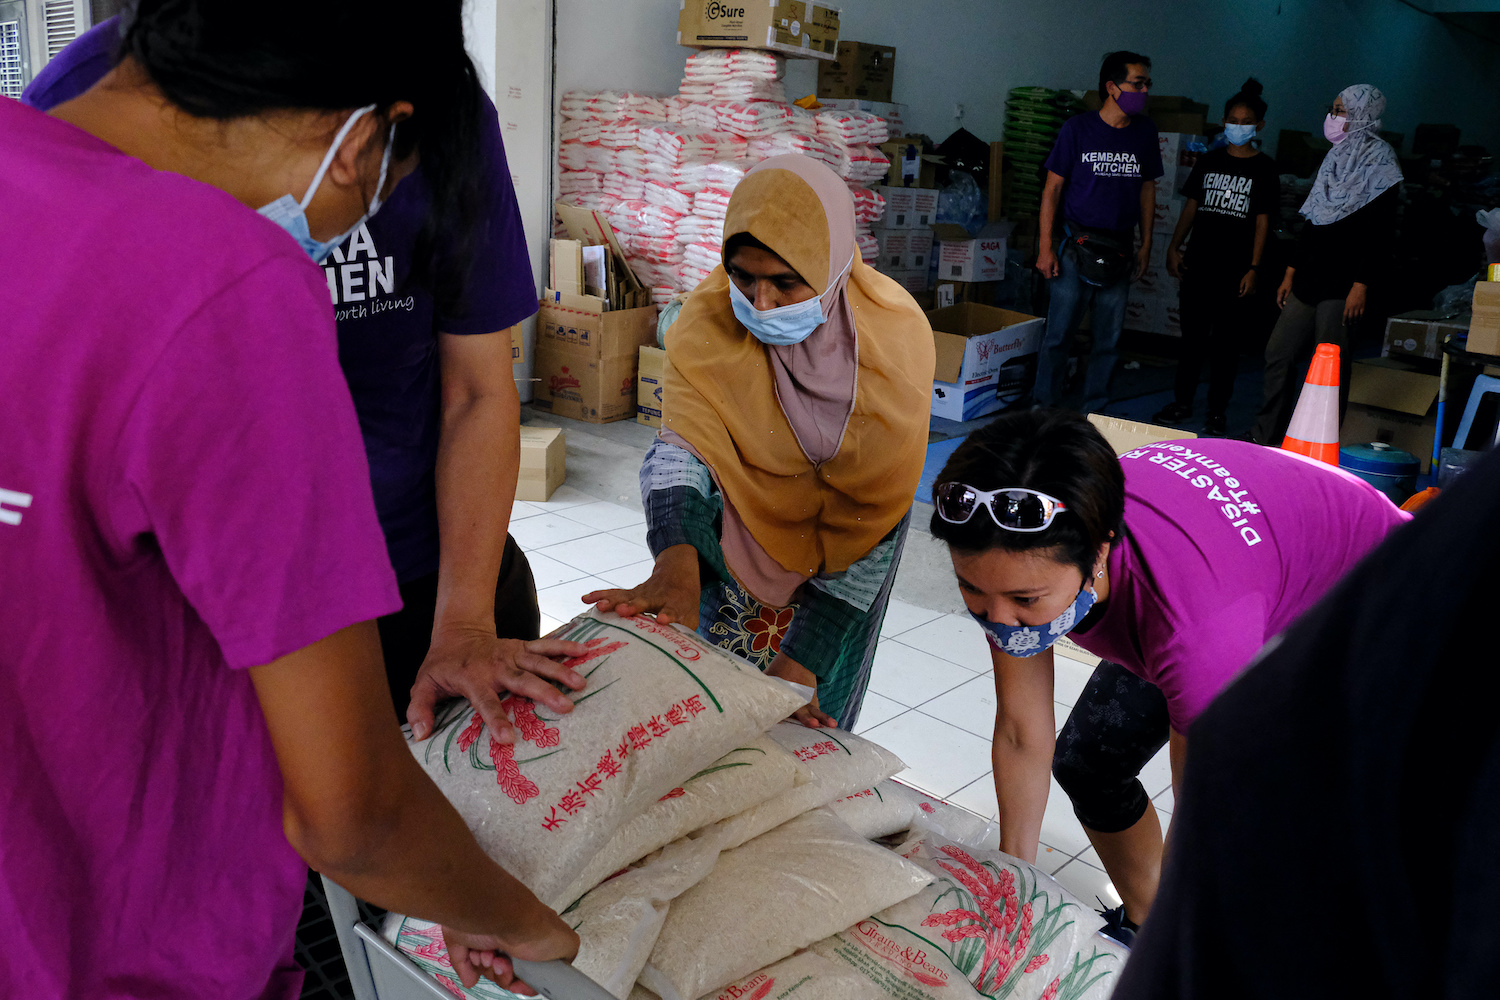 Volunteers pack food supplies for distribution to residents in need at the Kembara Community Care Centre in Kota Kemuning, Selangor, Malaysia on Friday. (Bloomberg Photo)